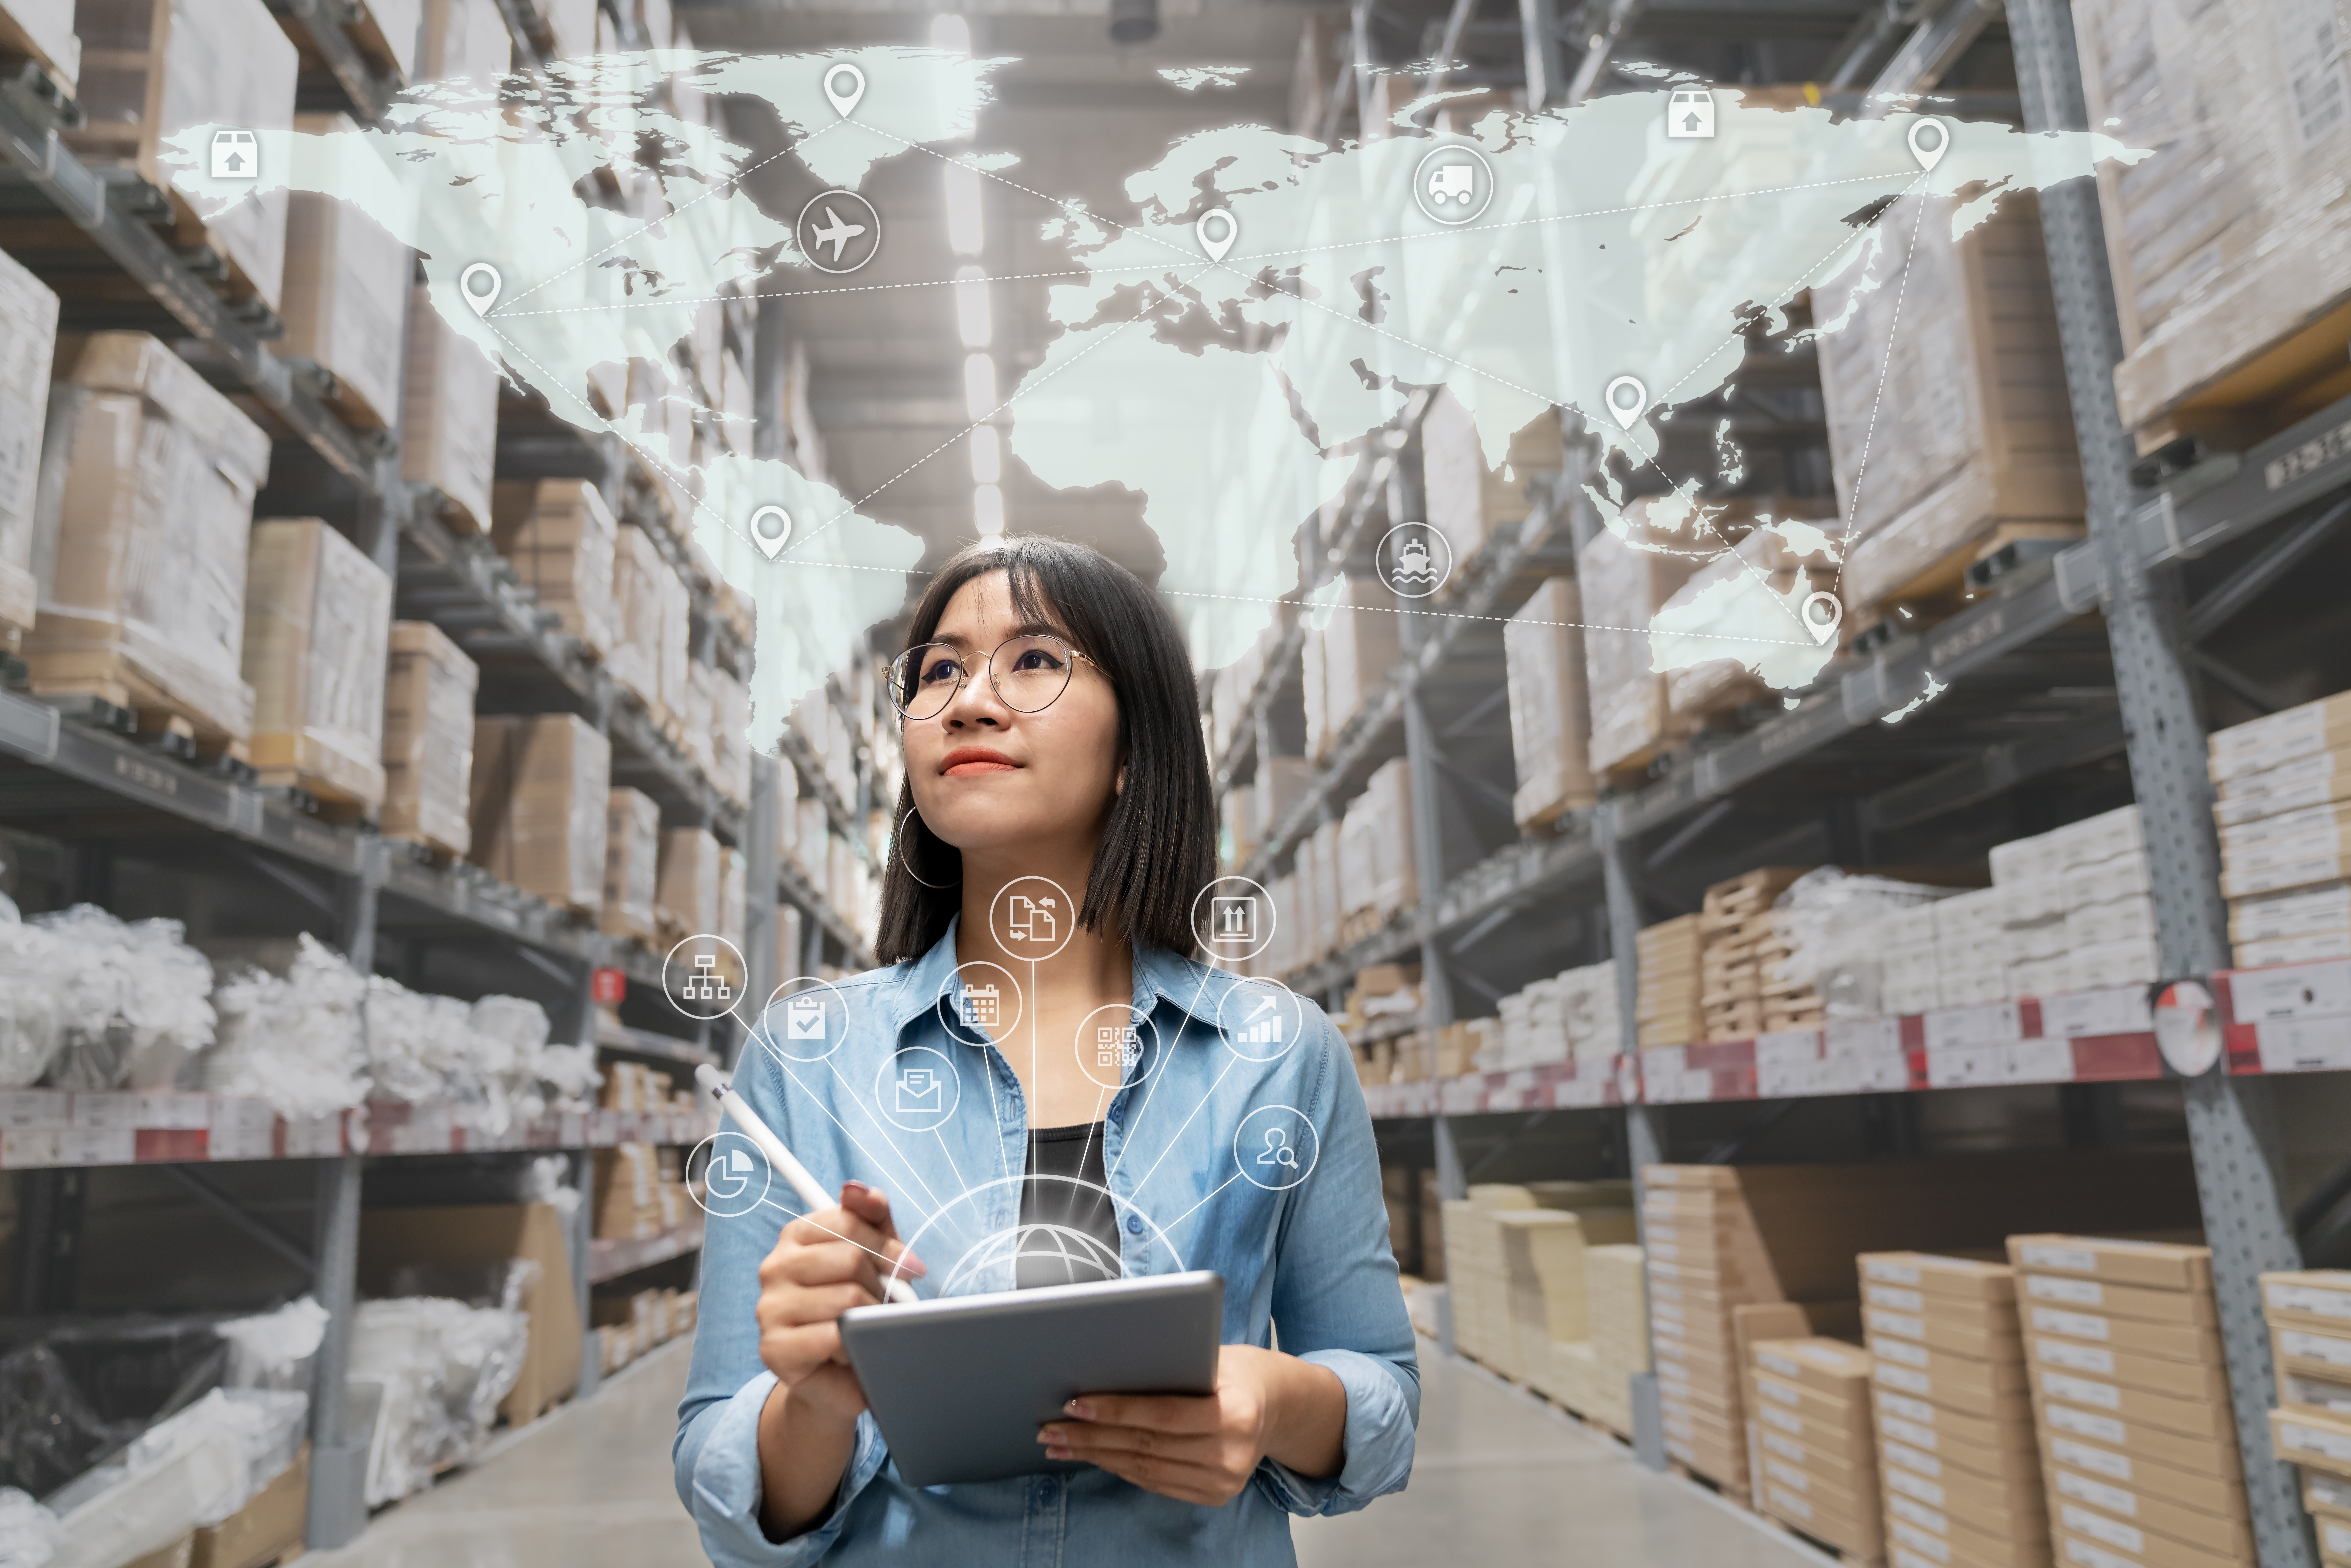 Portrait of happy young attractive asian entrepreneur woman looking at inventory in warehouse using smart tablet in management technology,  interconnected industry, asian small business sme concept.